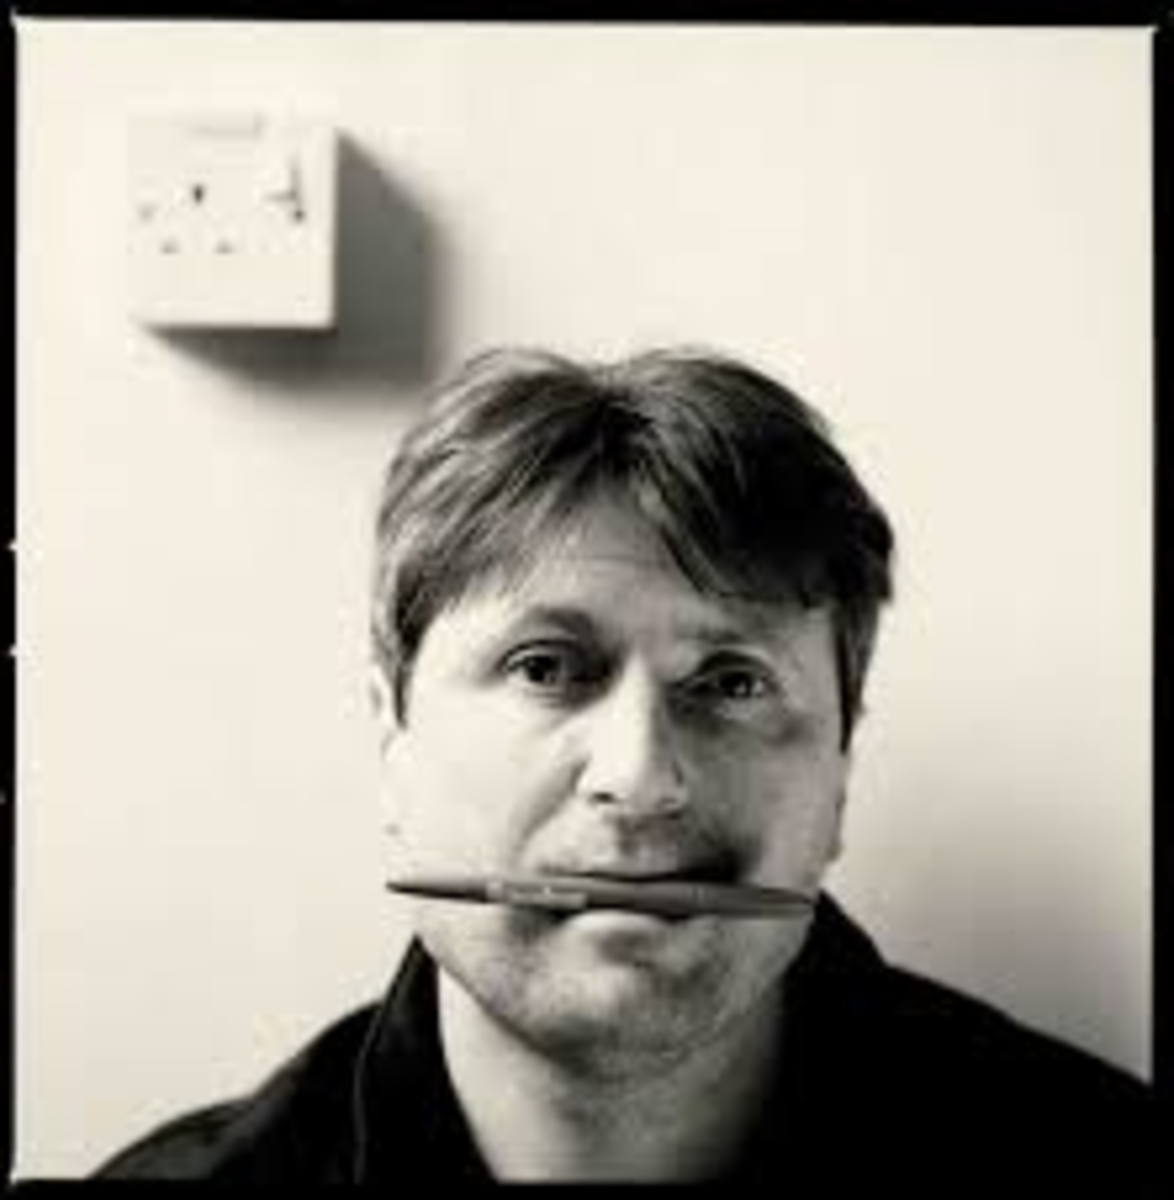 Analysis of 'Alaska' by Simon Armitage